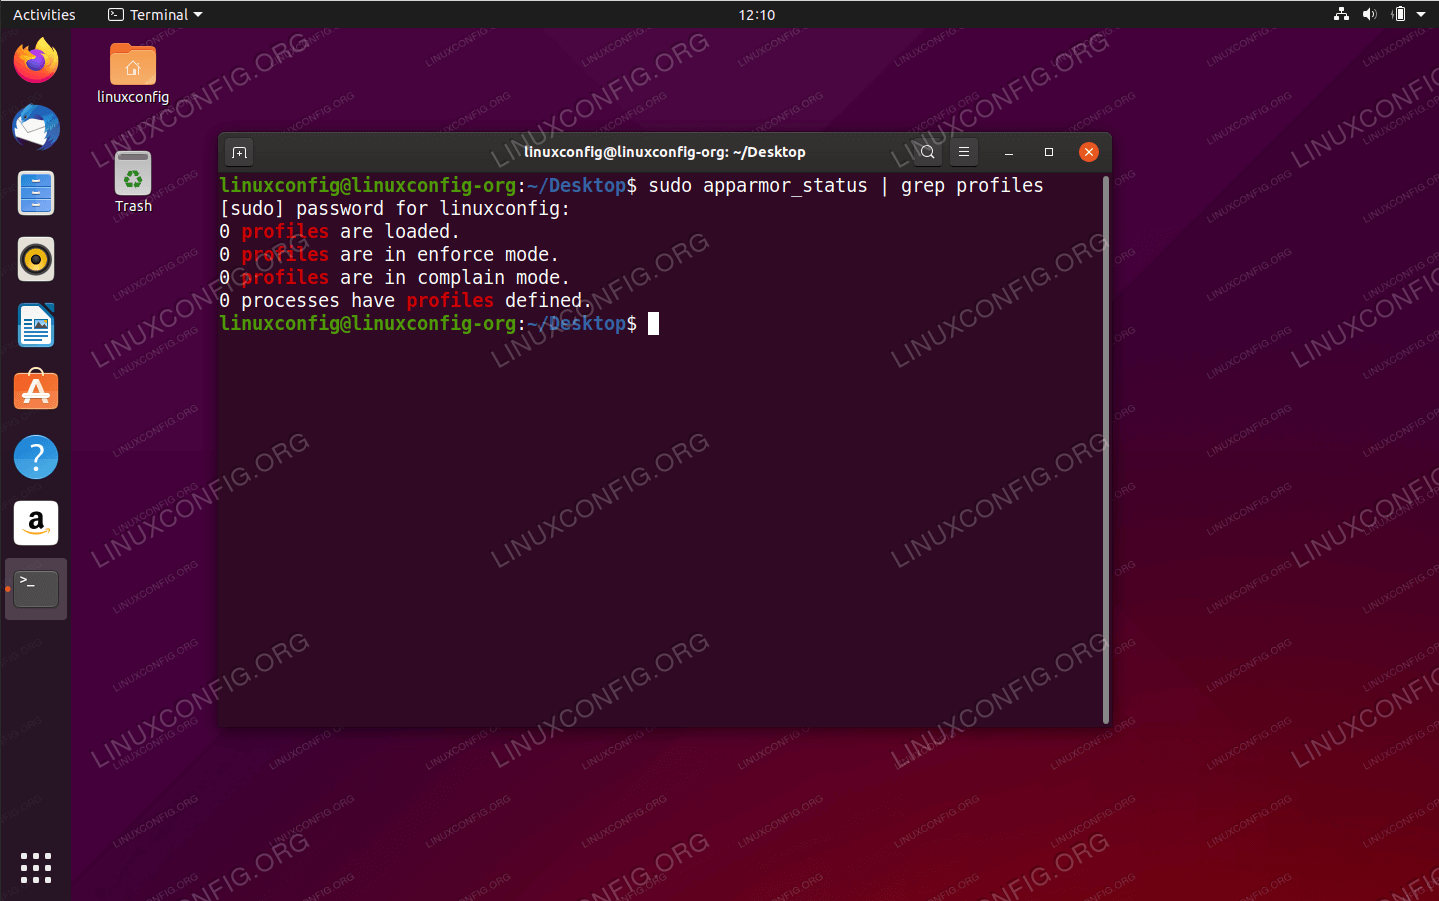 Disabled AppArmor on Ubuntu 20.04 Focal Fossa Linux